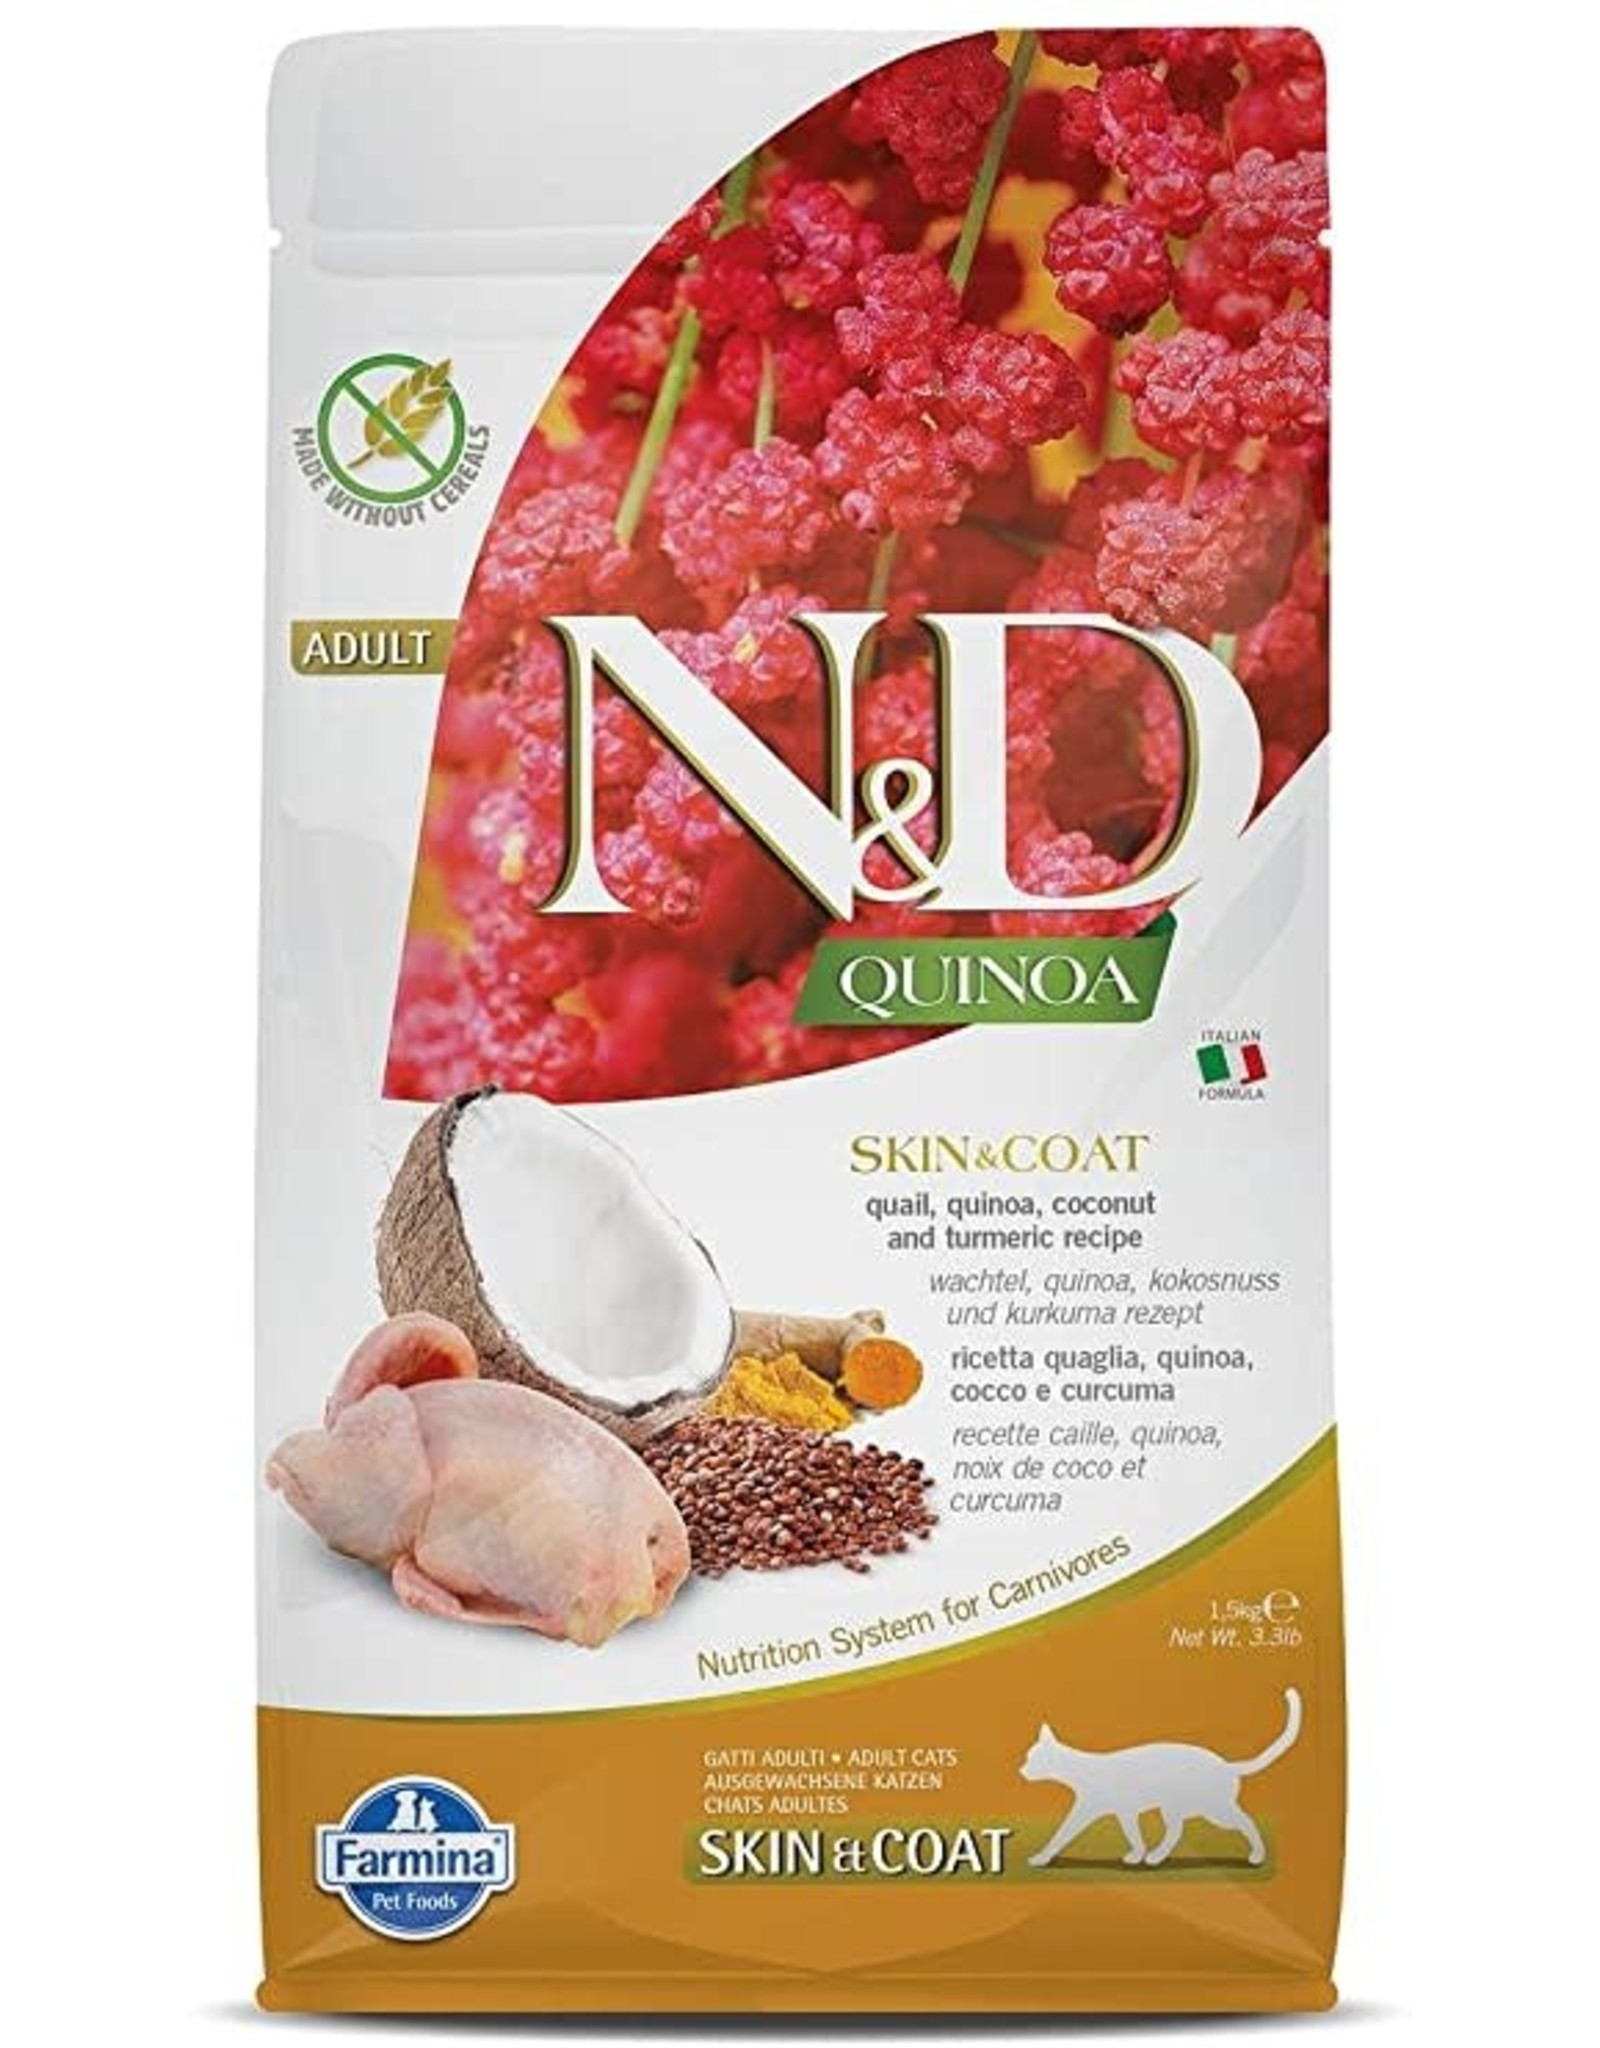 Farmina N&D Cat - Skin+Coat Quinoa, Quail, Coconut & Turmeric Adult 3.3lb